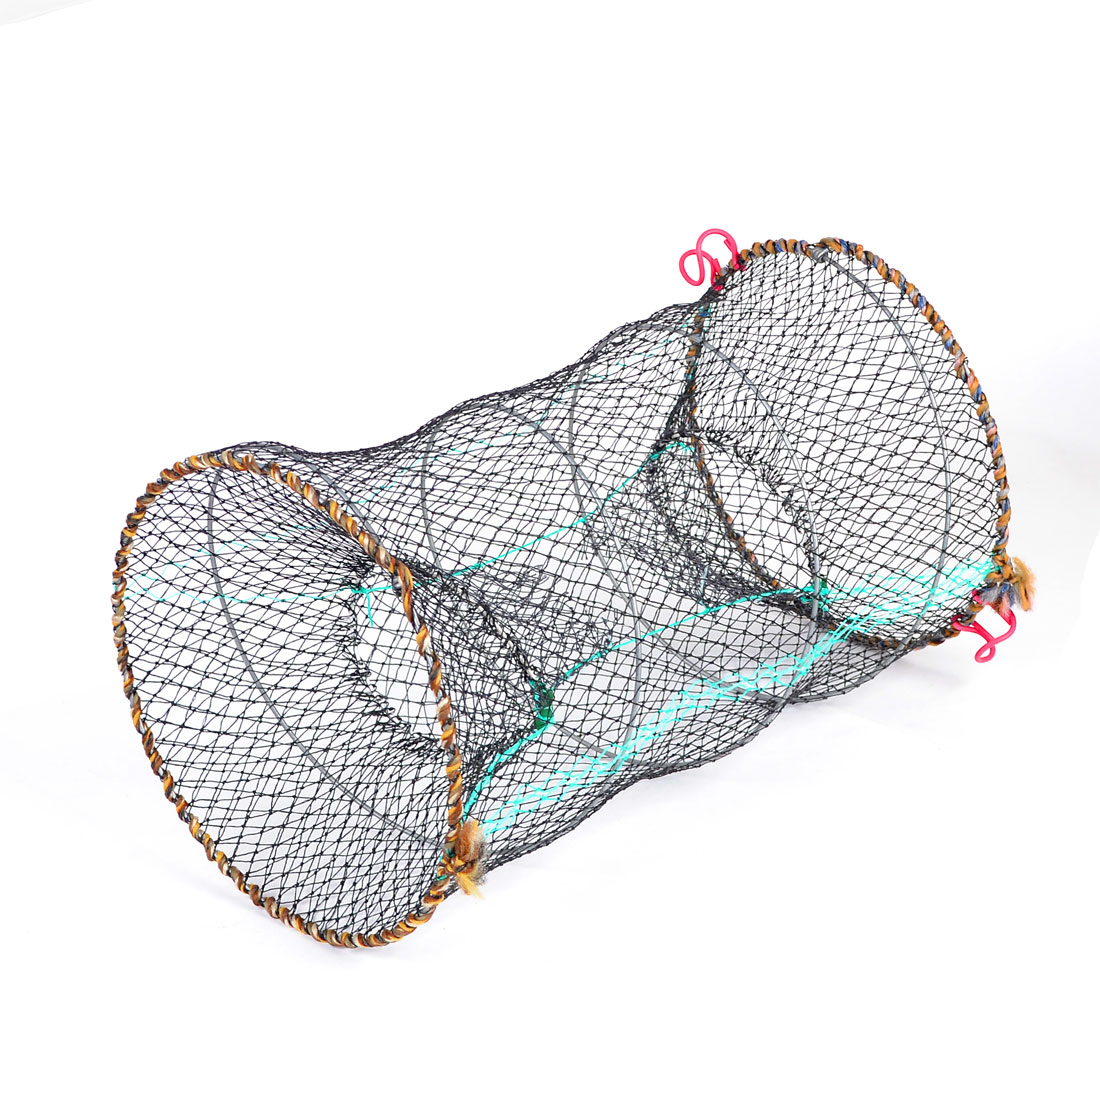 Pond Black 25cm Dia Cylinder Foldable Nylon Mesh Net Shrimp Crawfish Net